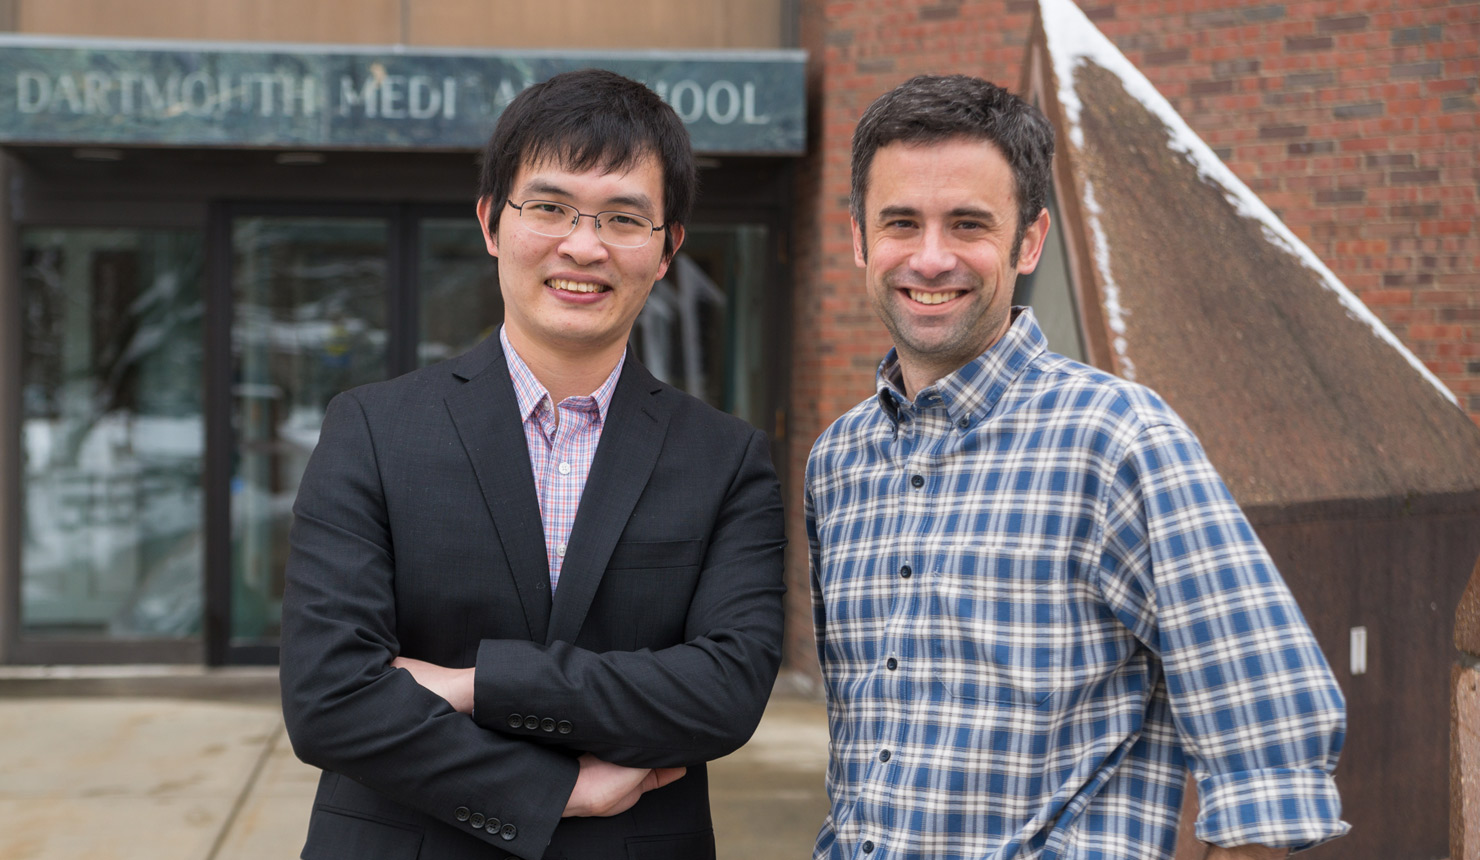 Lin Deng, PhD '15, with James Mosely, PhD, Assistant Professor of Biochemistry. Photo credit: Eli Burakian